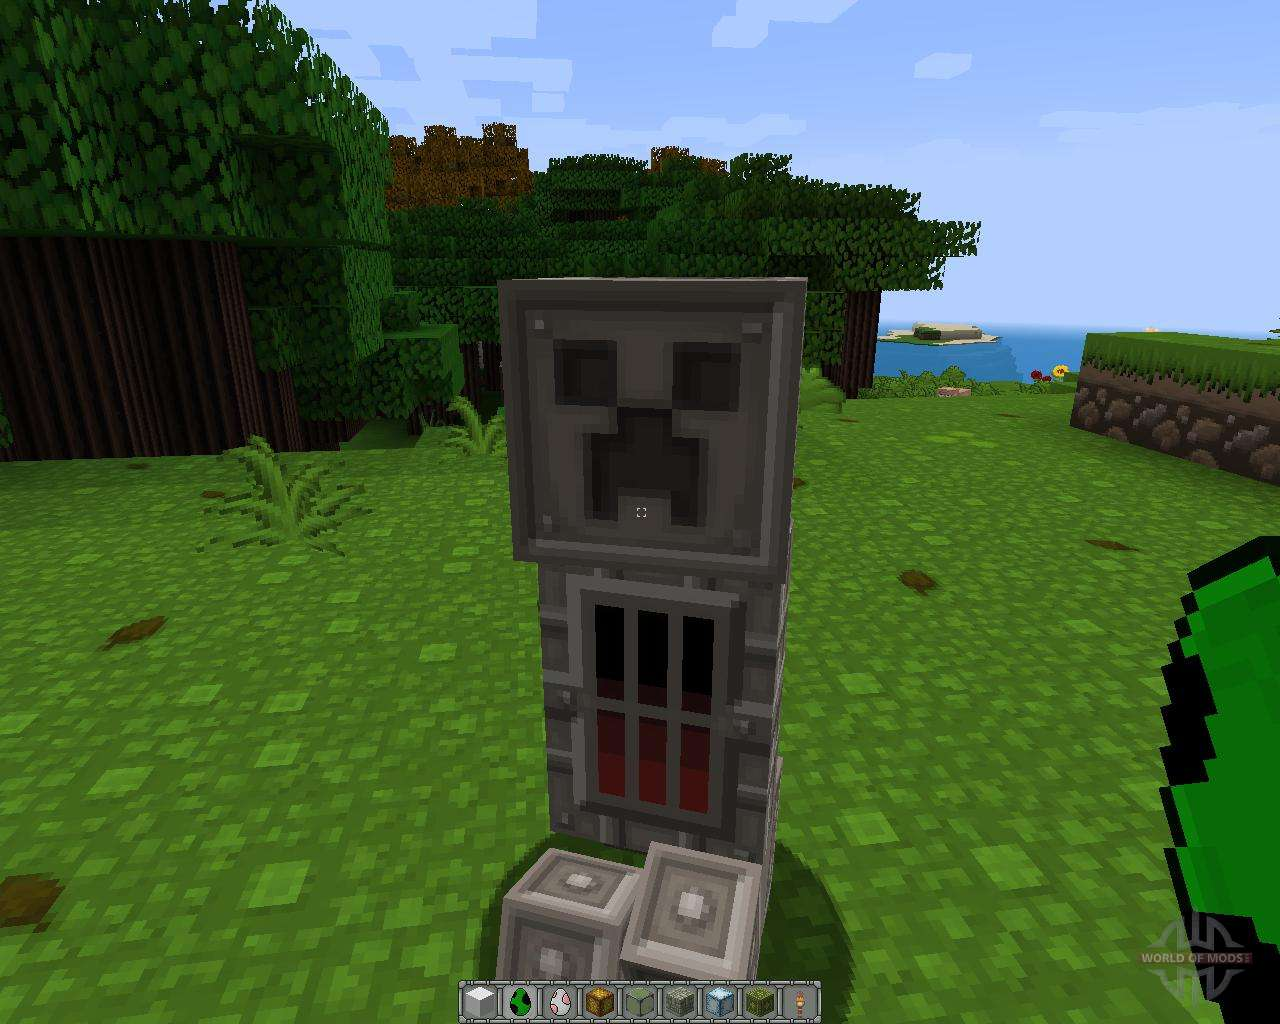 silvermines texture pack